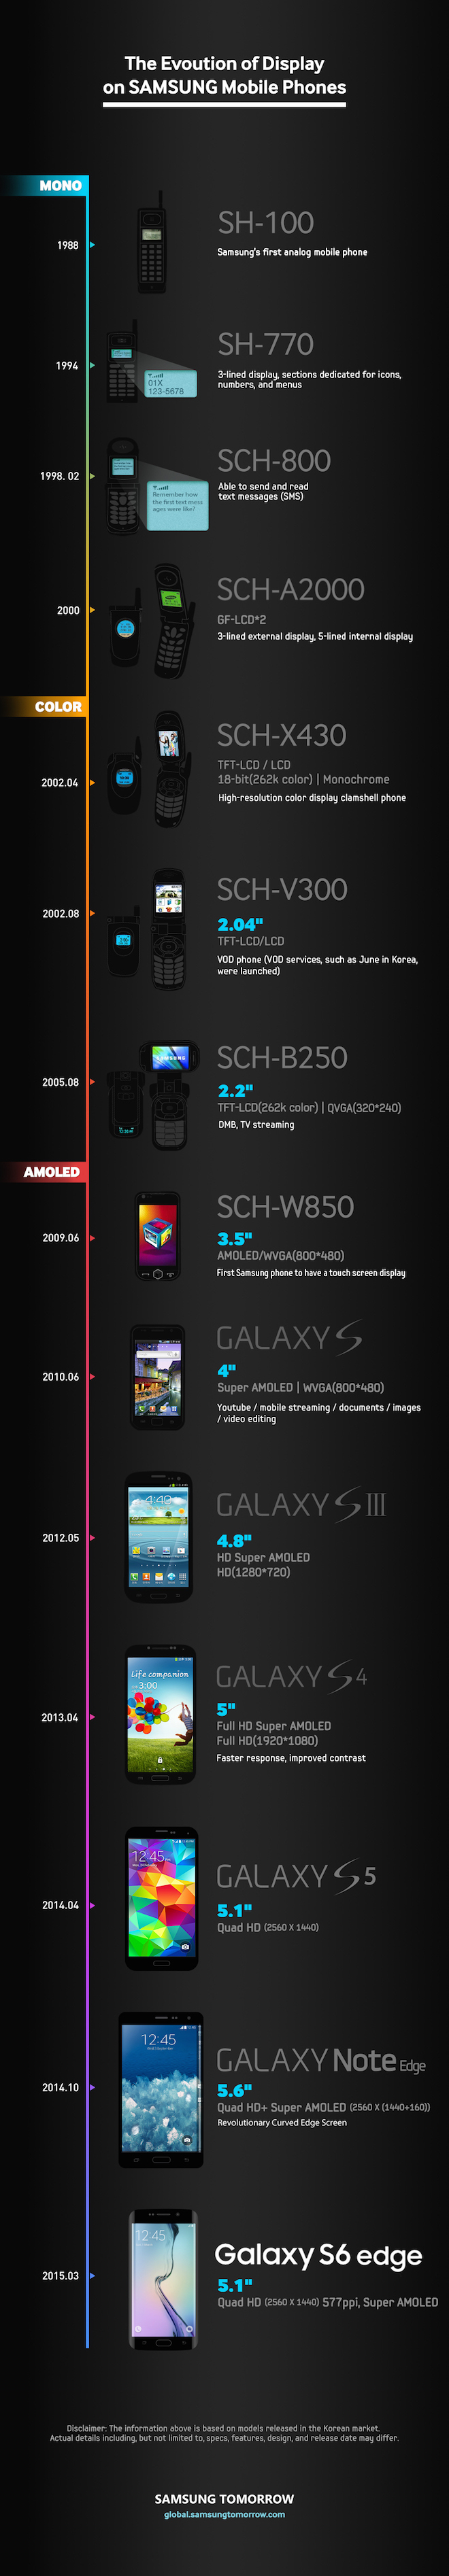 Samsung Display infographic